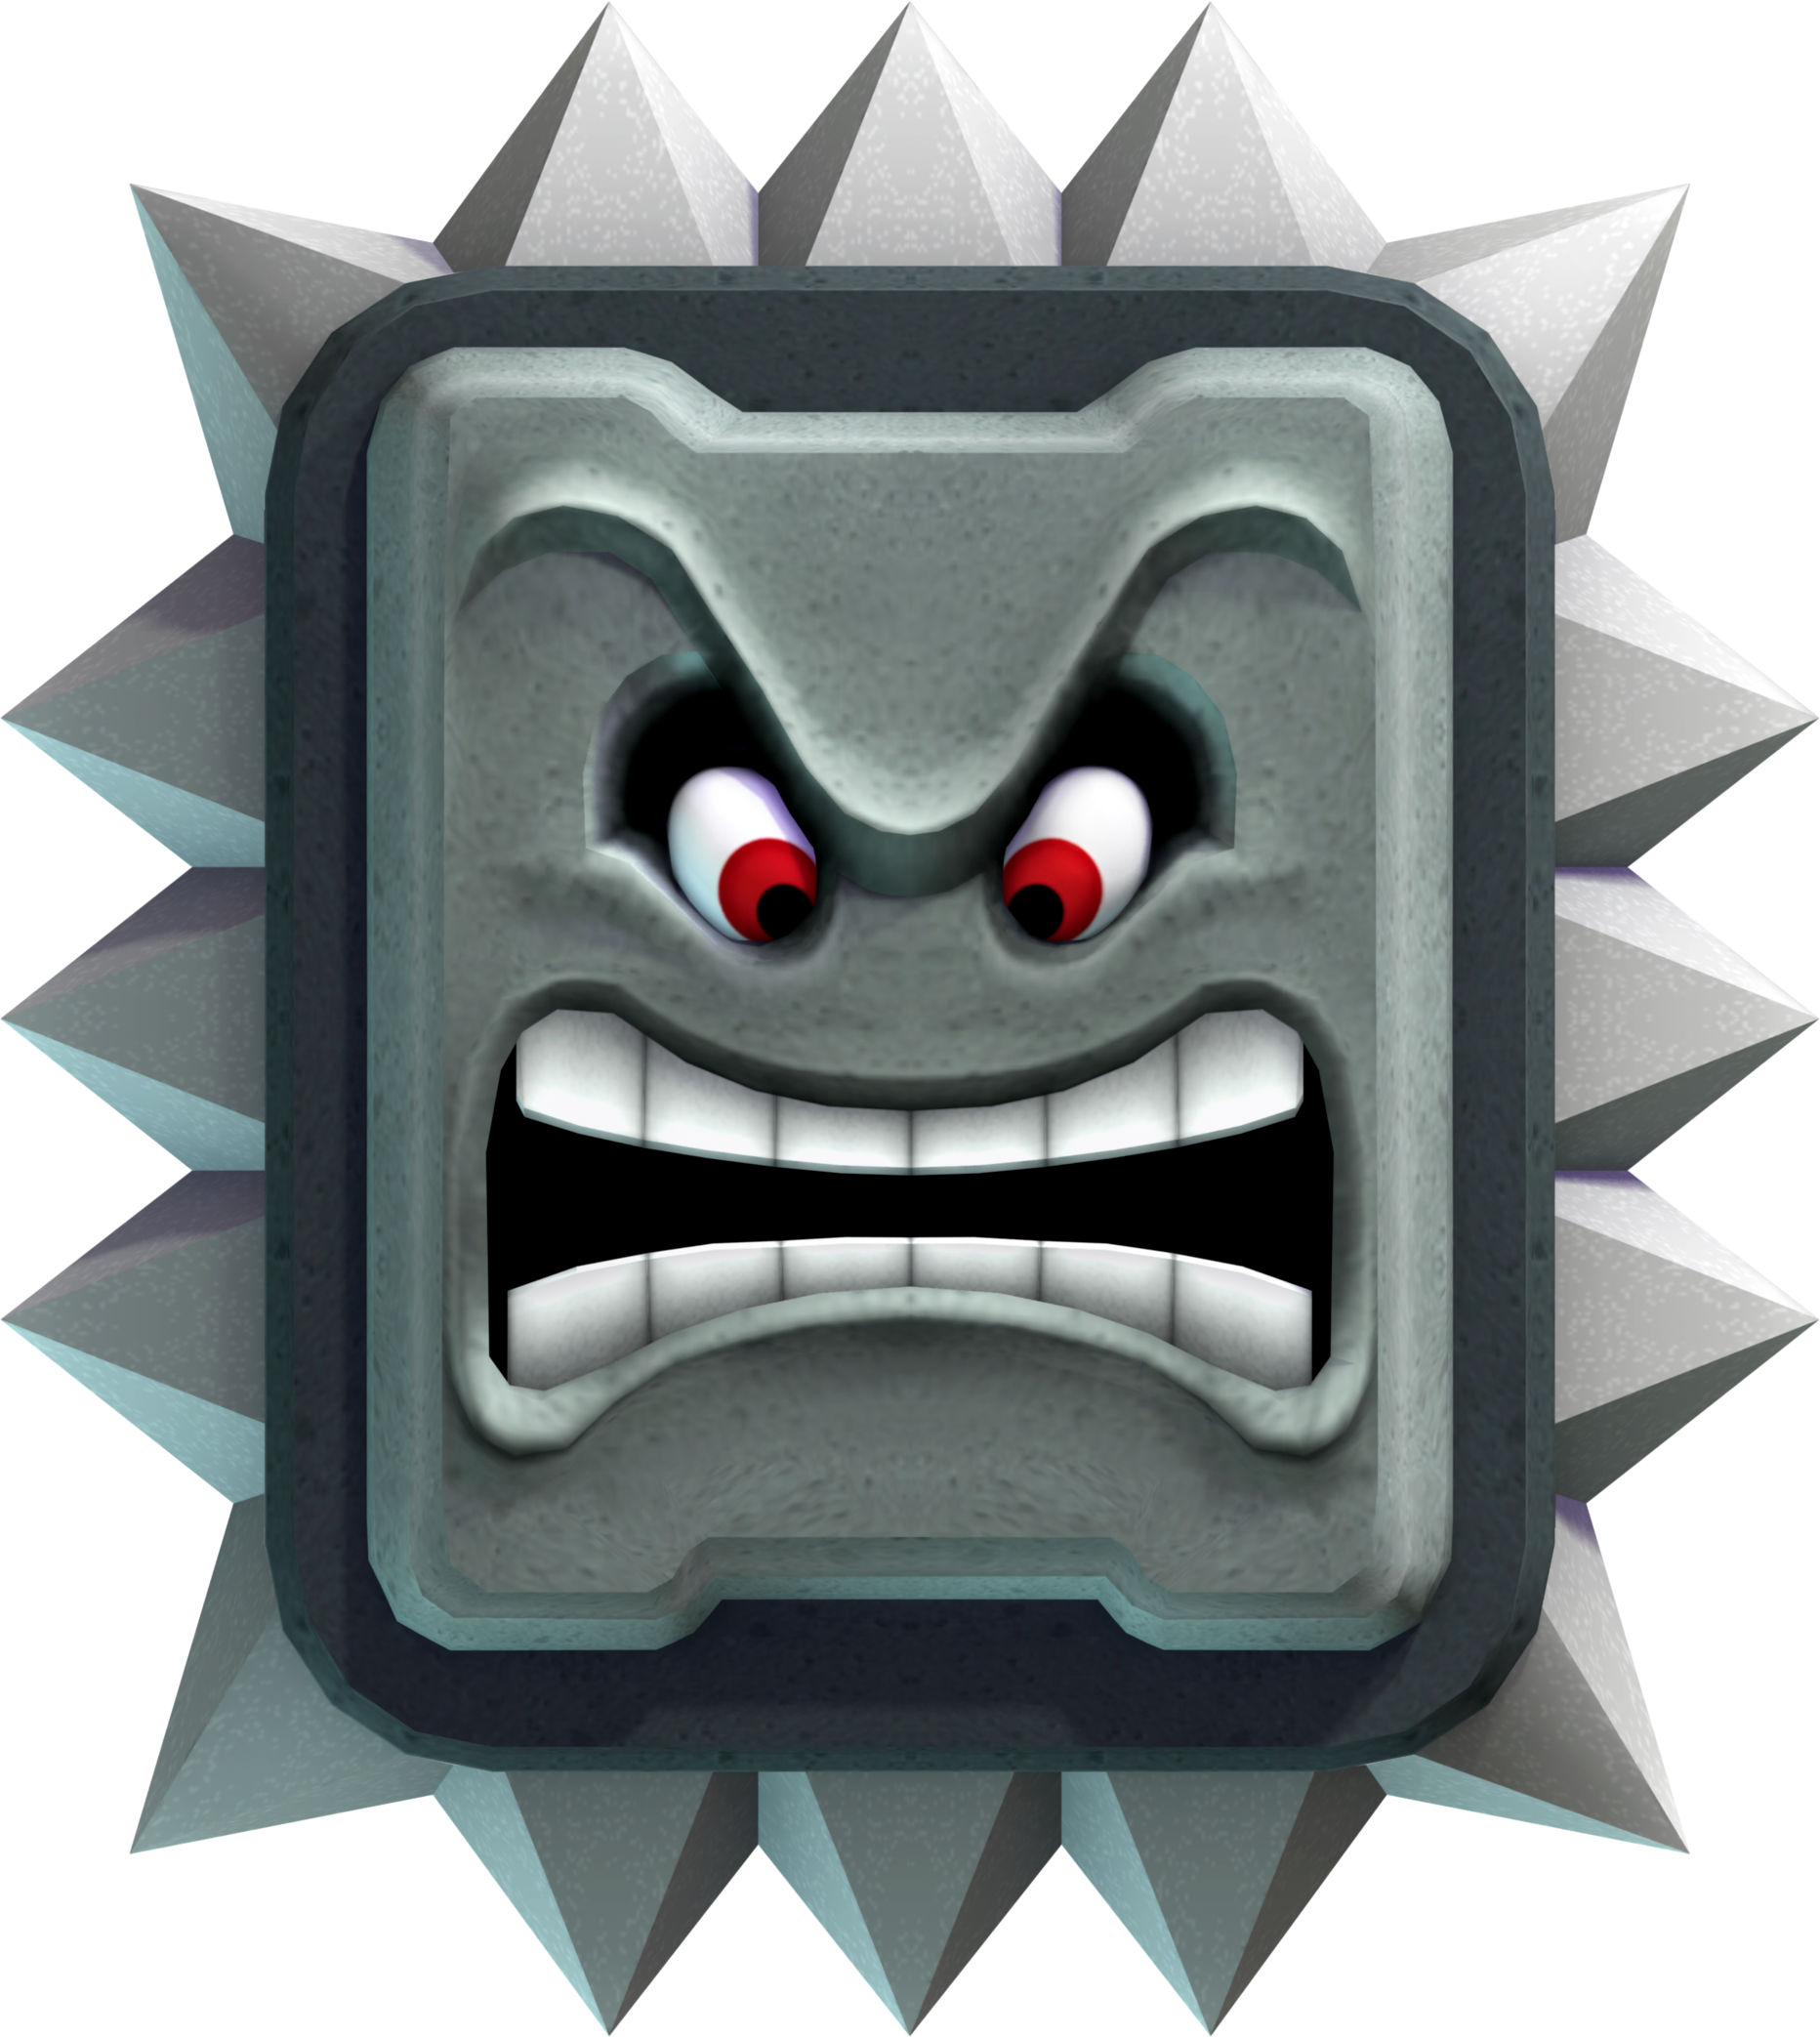 png free download Block clipart toy game. Thwomp kaizo mario maker